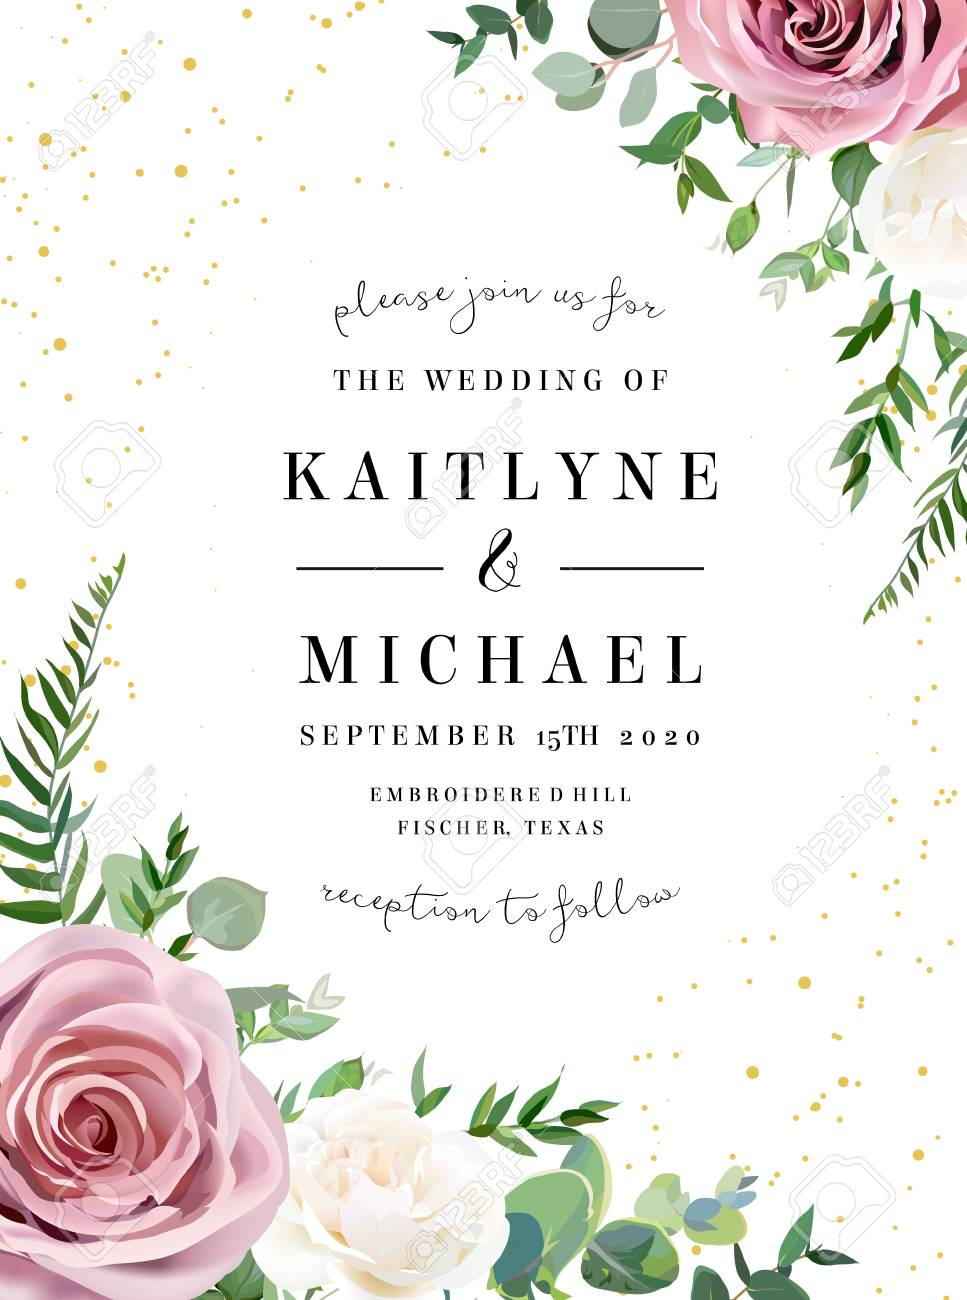 Dusty pink, creamy white antique rose, pale flowers vector design wedding frame. Eucalyptus, spring greenery. Gold glitter.Floral pastel watercolor style border. All elements are isolated and editable - 116421506